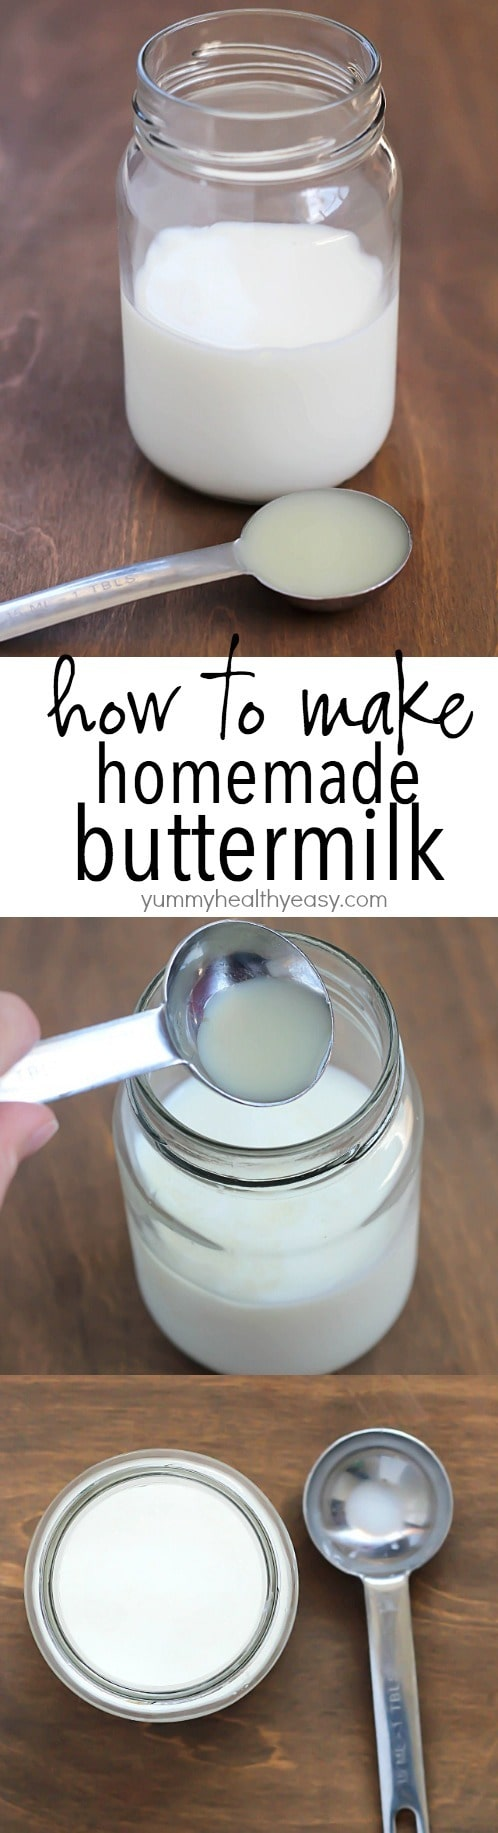 How to make homemade buttermilk - best kitchen hack ever! Enter Fresh & Easy's Holiday Sweepstakes to win $150 in groceries or $300 cash! #ad